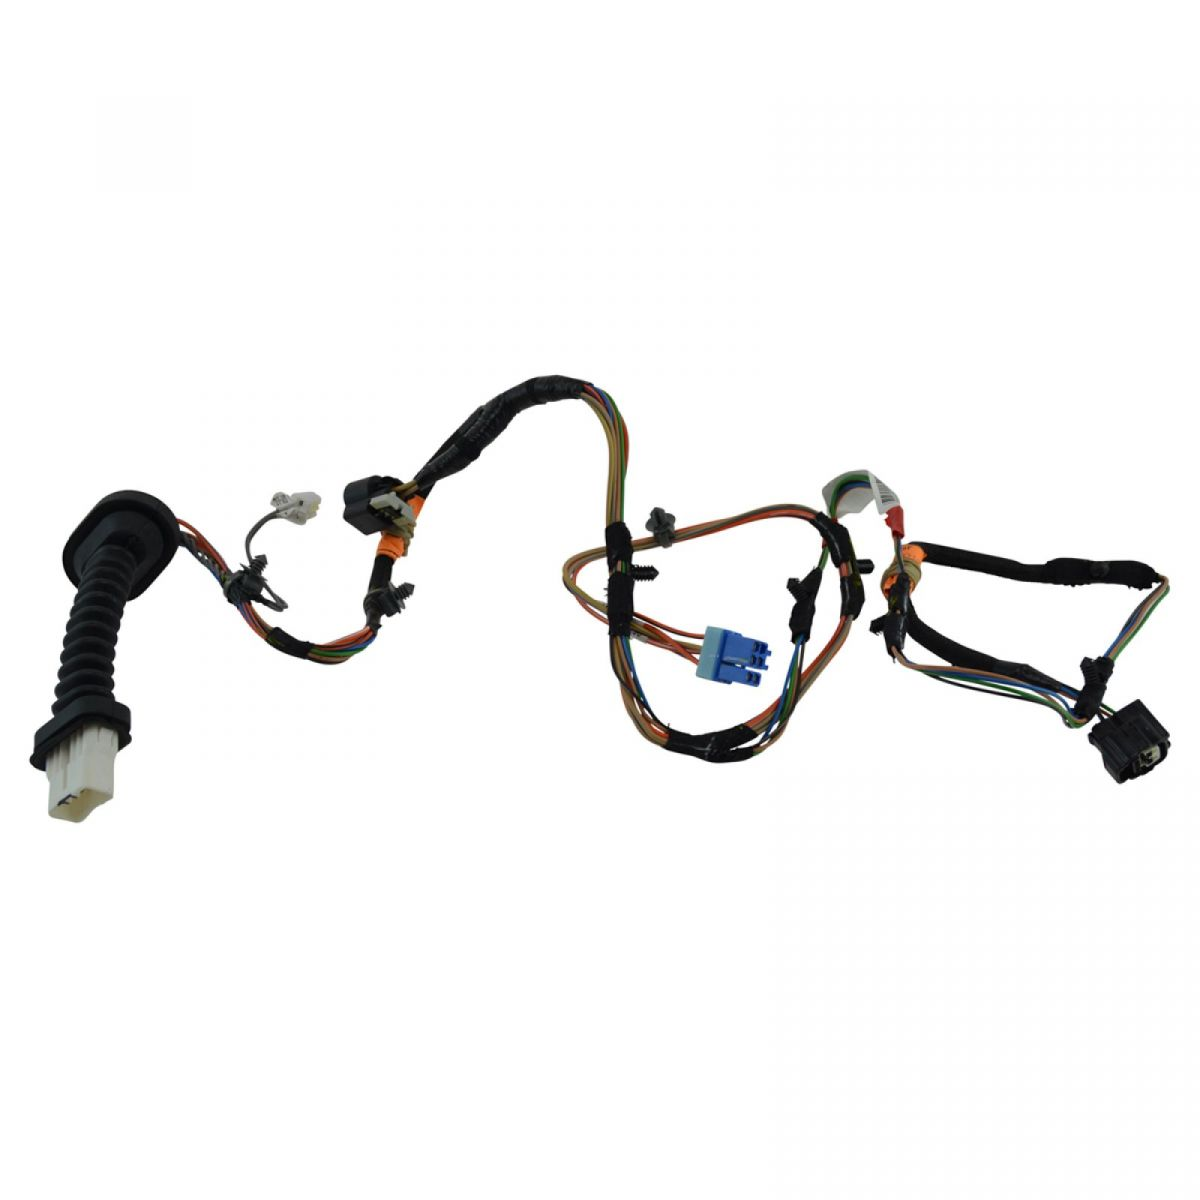 AM 3783557712 oem 56051393ac rear door wiring harness for 06 09 dodge ram mega Dodge Transmission Wiring Harness at bayanpartner.co